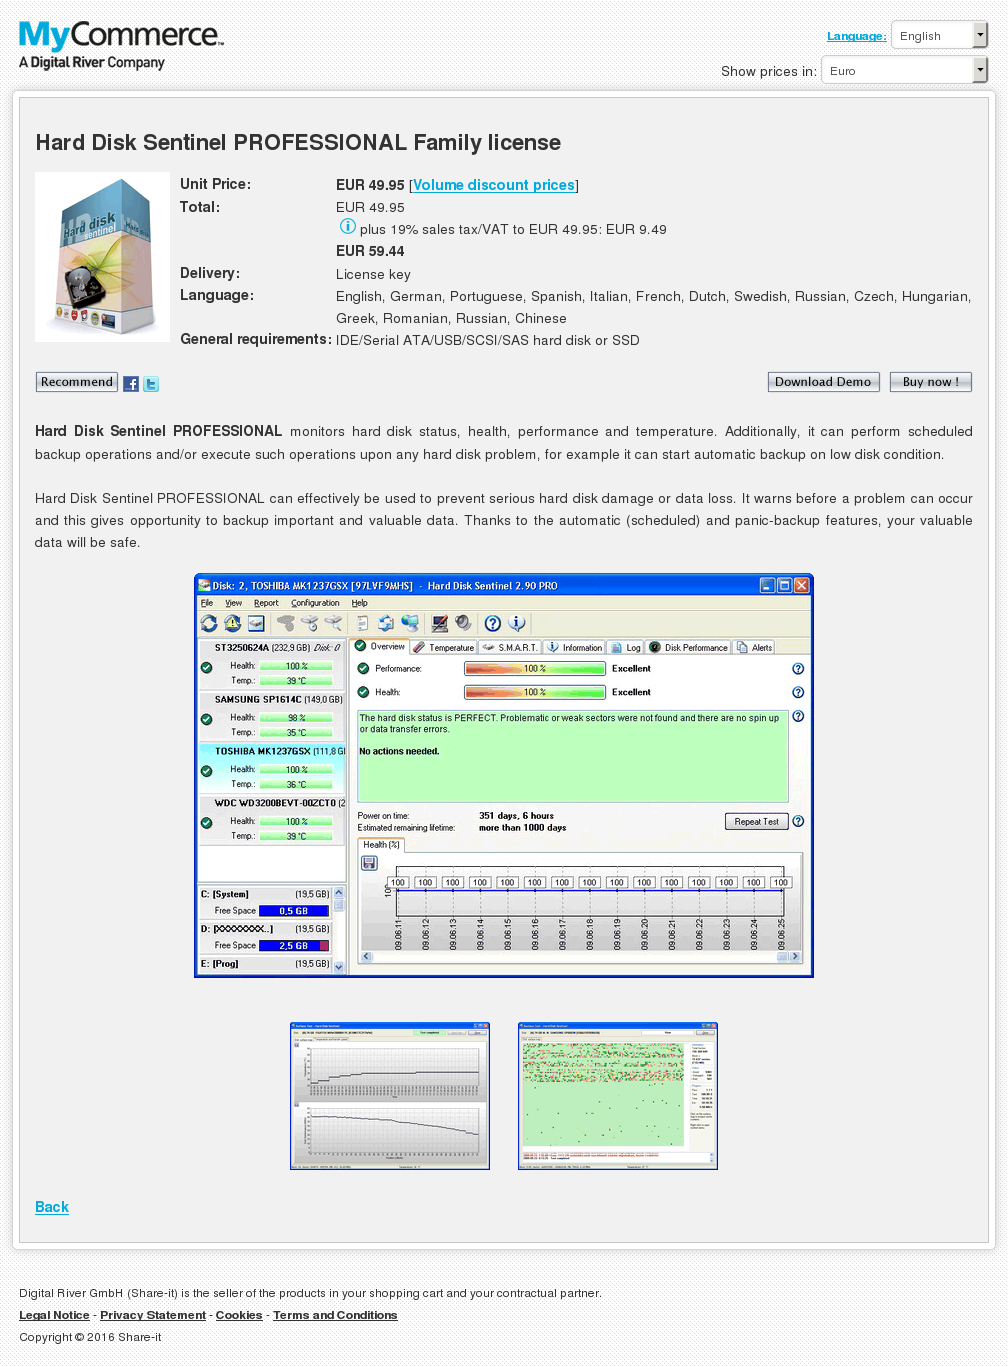 Hard Disk Sentinel Professional Family License Download